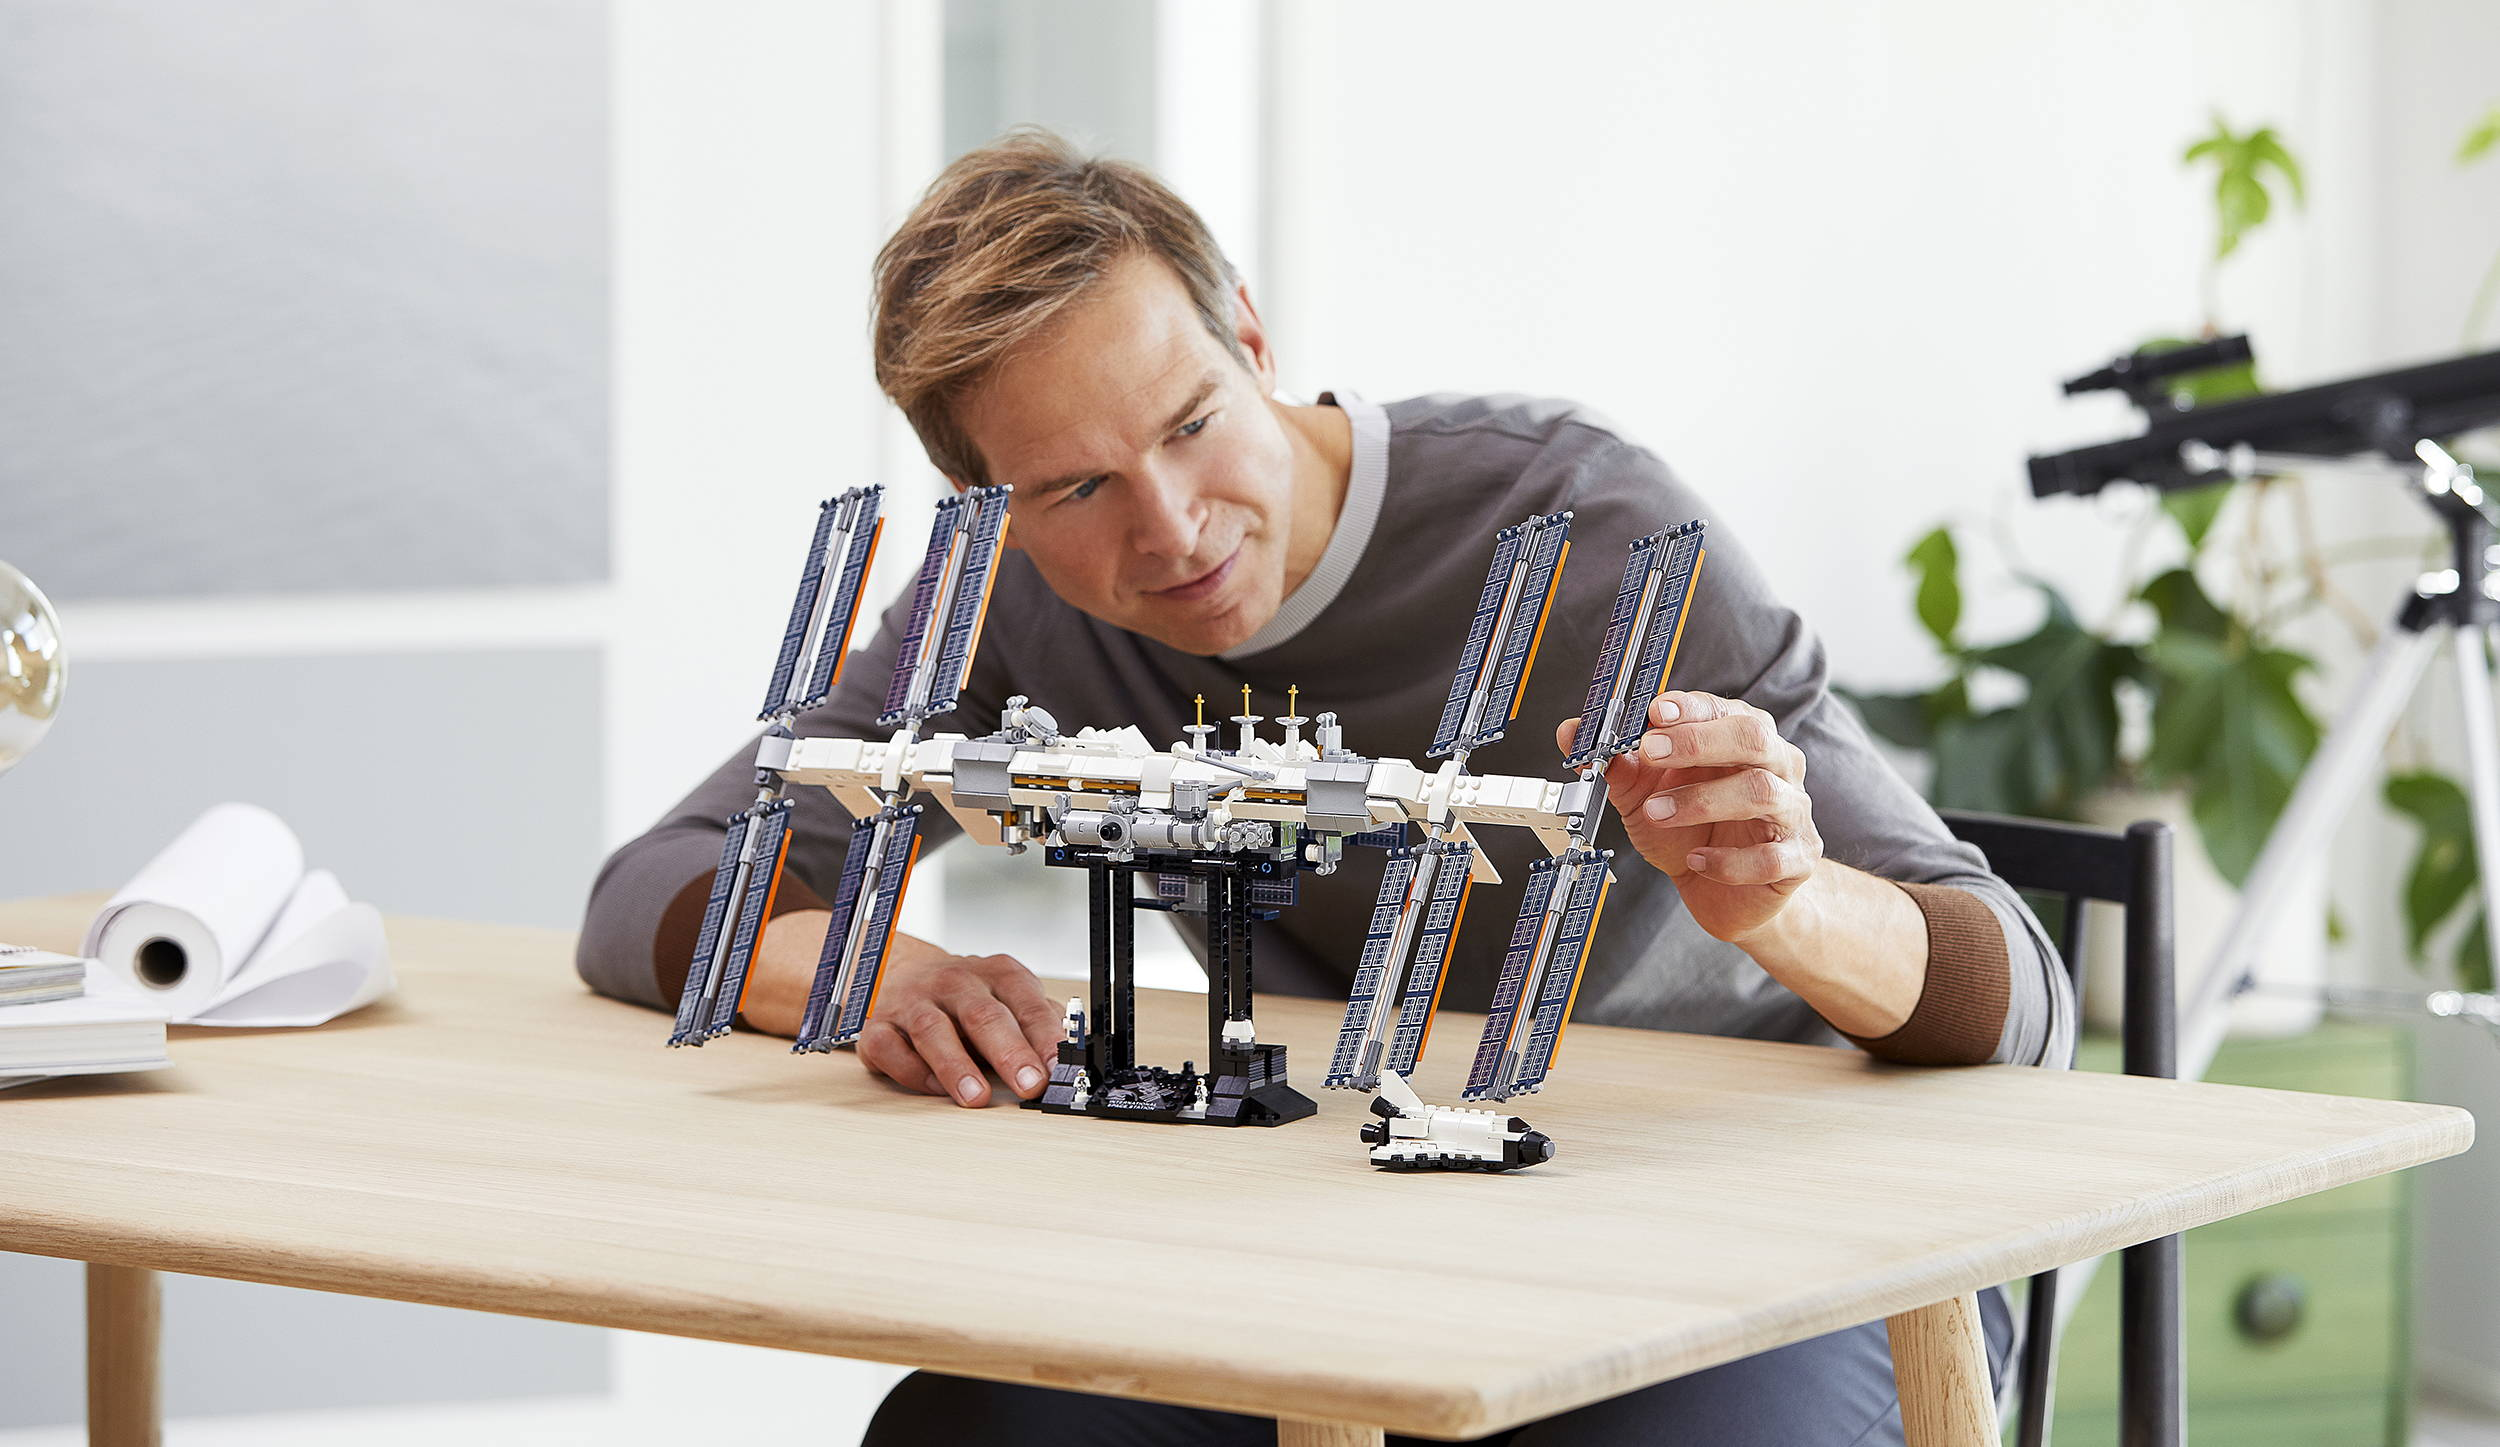 LEGO sets for each age group